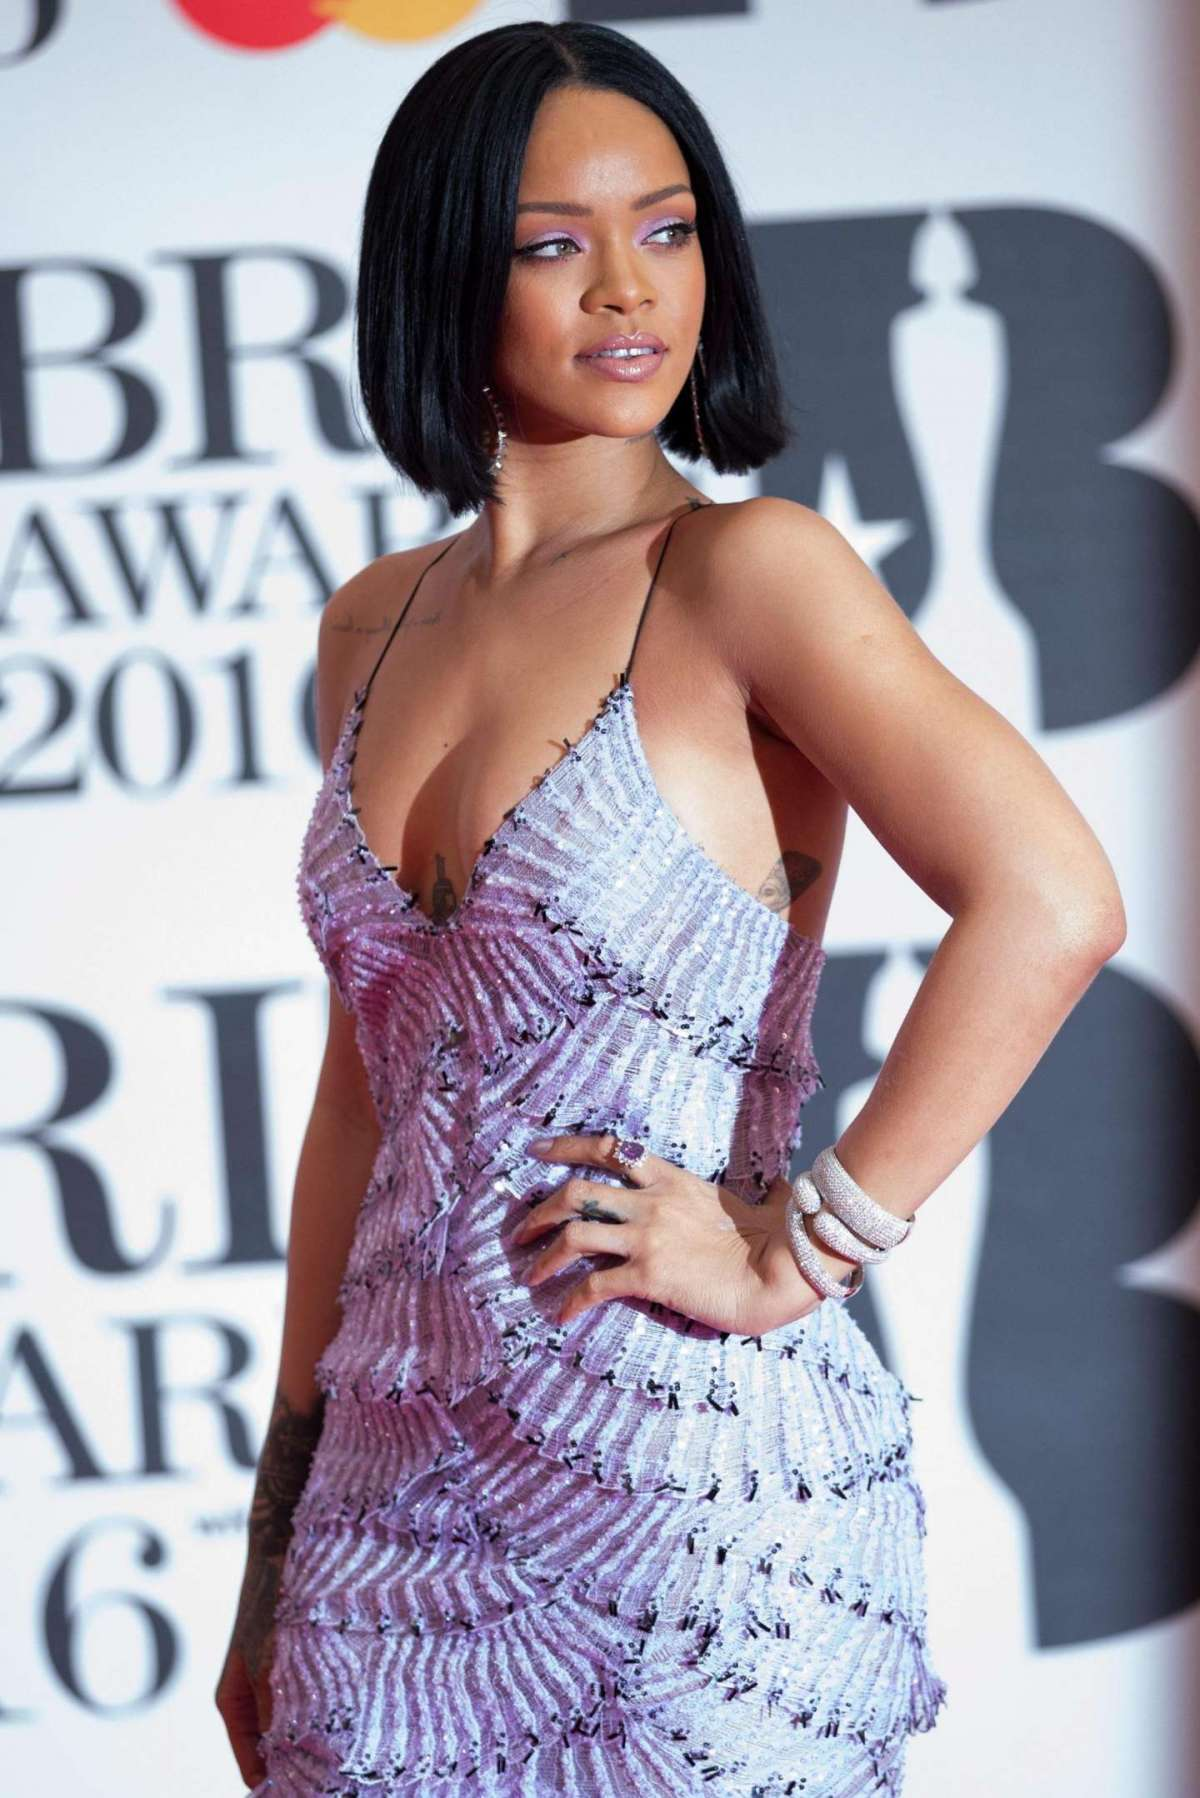 arrives on the red carpet for the 2016 Brit Awards at the O2 Arena in Greenwich, London, Britain, 24 February 2016